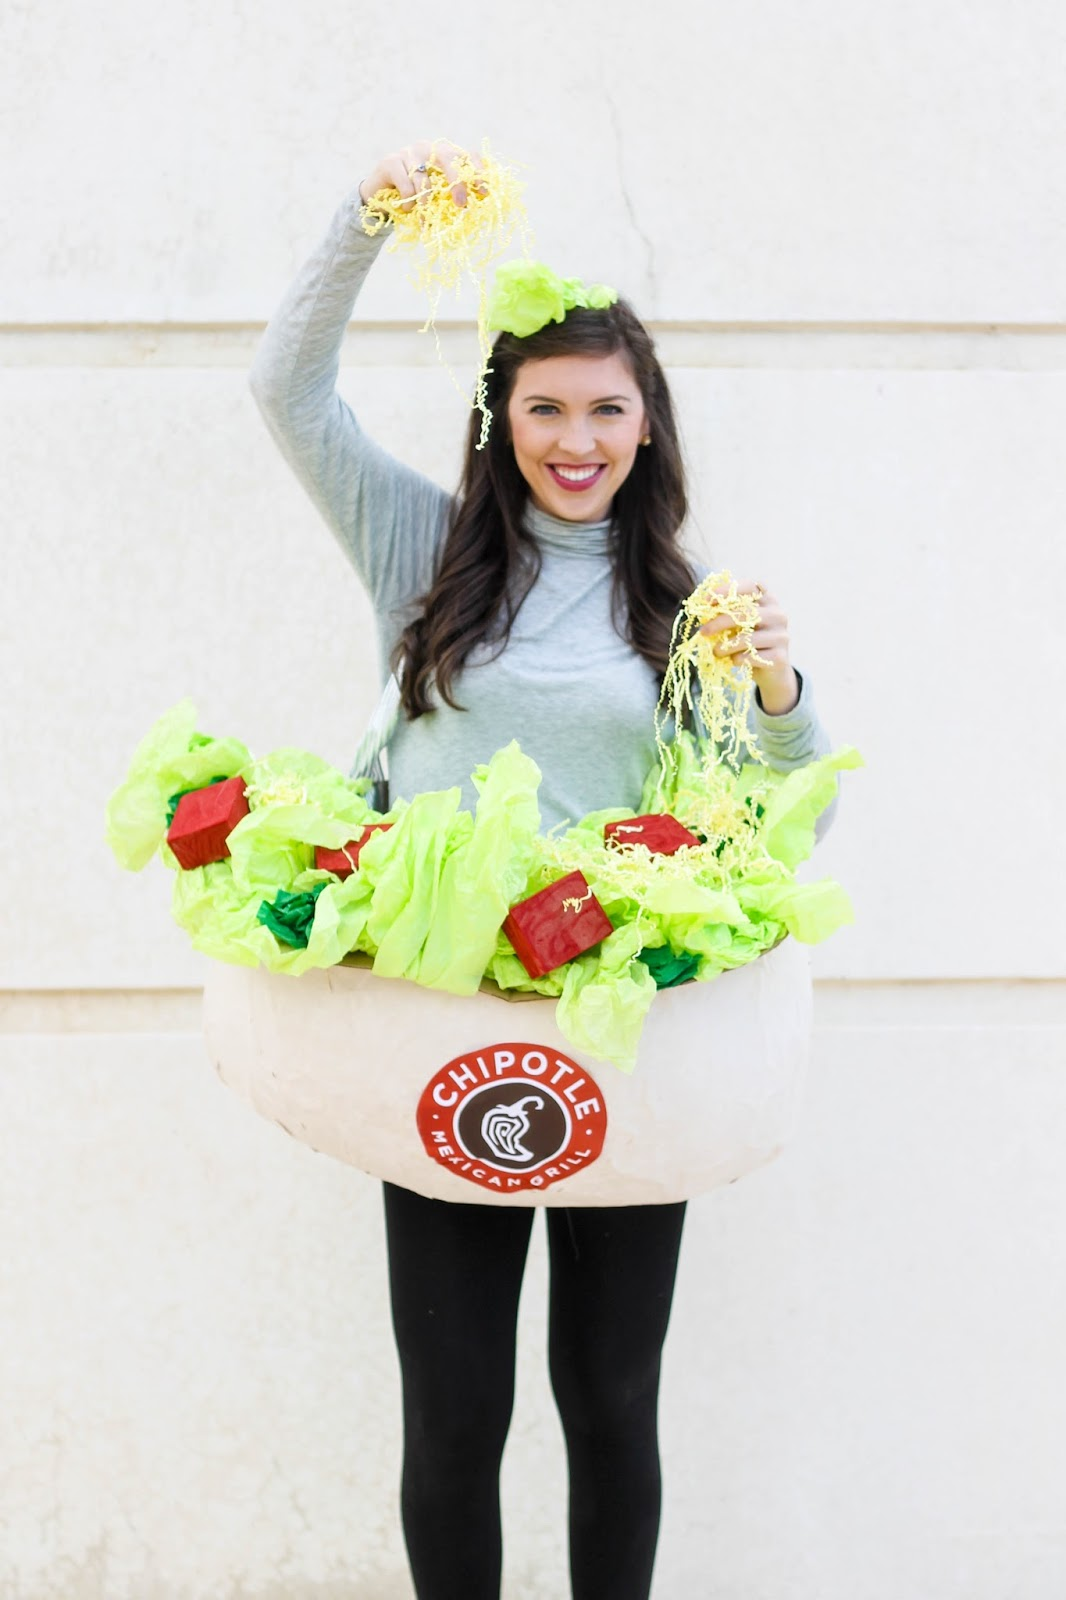 Chipotle Halloween costume Chipotle bowl costume Chipotle burrito costume Halloween Costume Idea  sc 1 st  Pretty in the Pines & Halloween Chipotle Costume DIY - Pretty in the Pines North Carolina ...